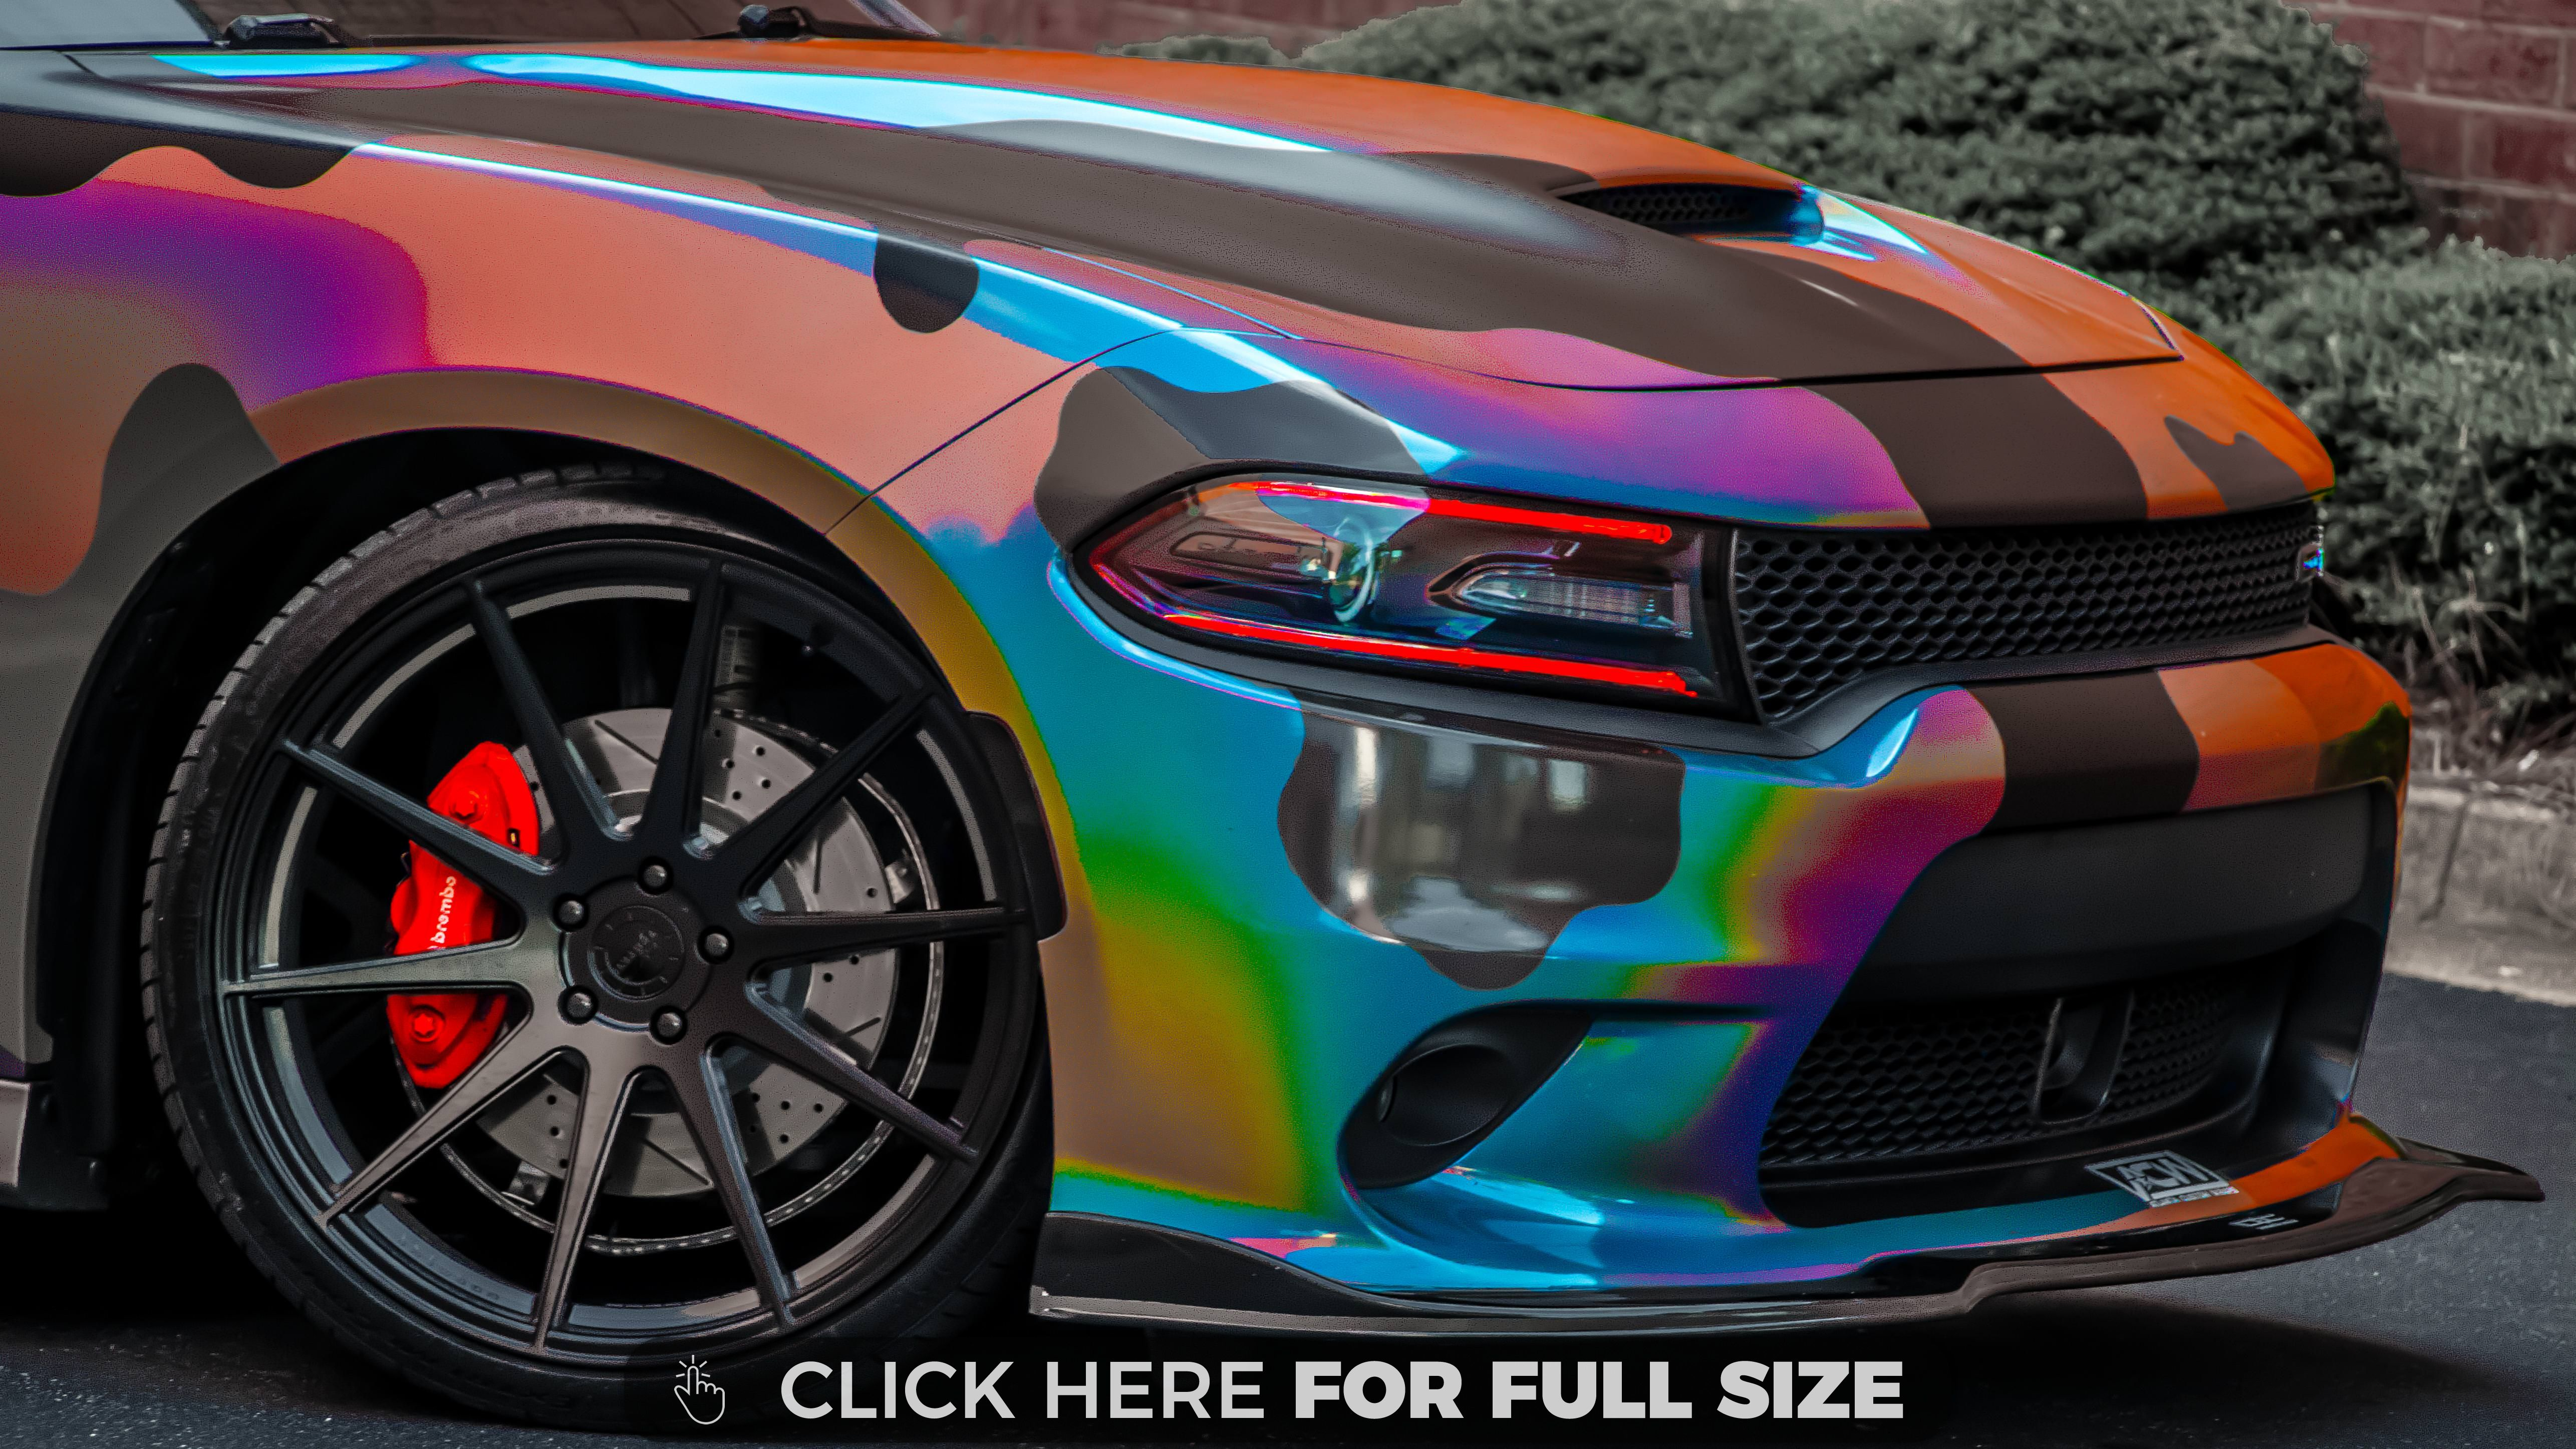 Holographic Camo Wrapped Dodge Charger Scatpack 4k Wallpaper Dodge Charger Dodge Charger Hellcat Camo Wraps